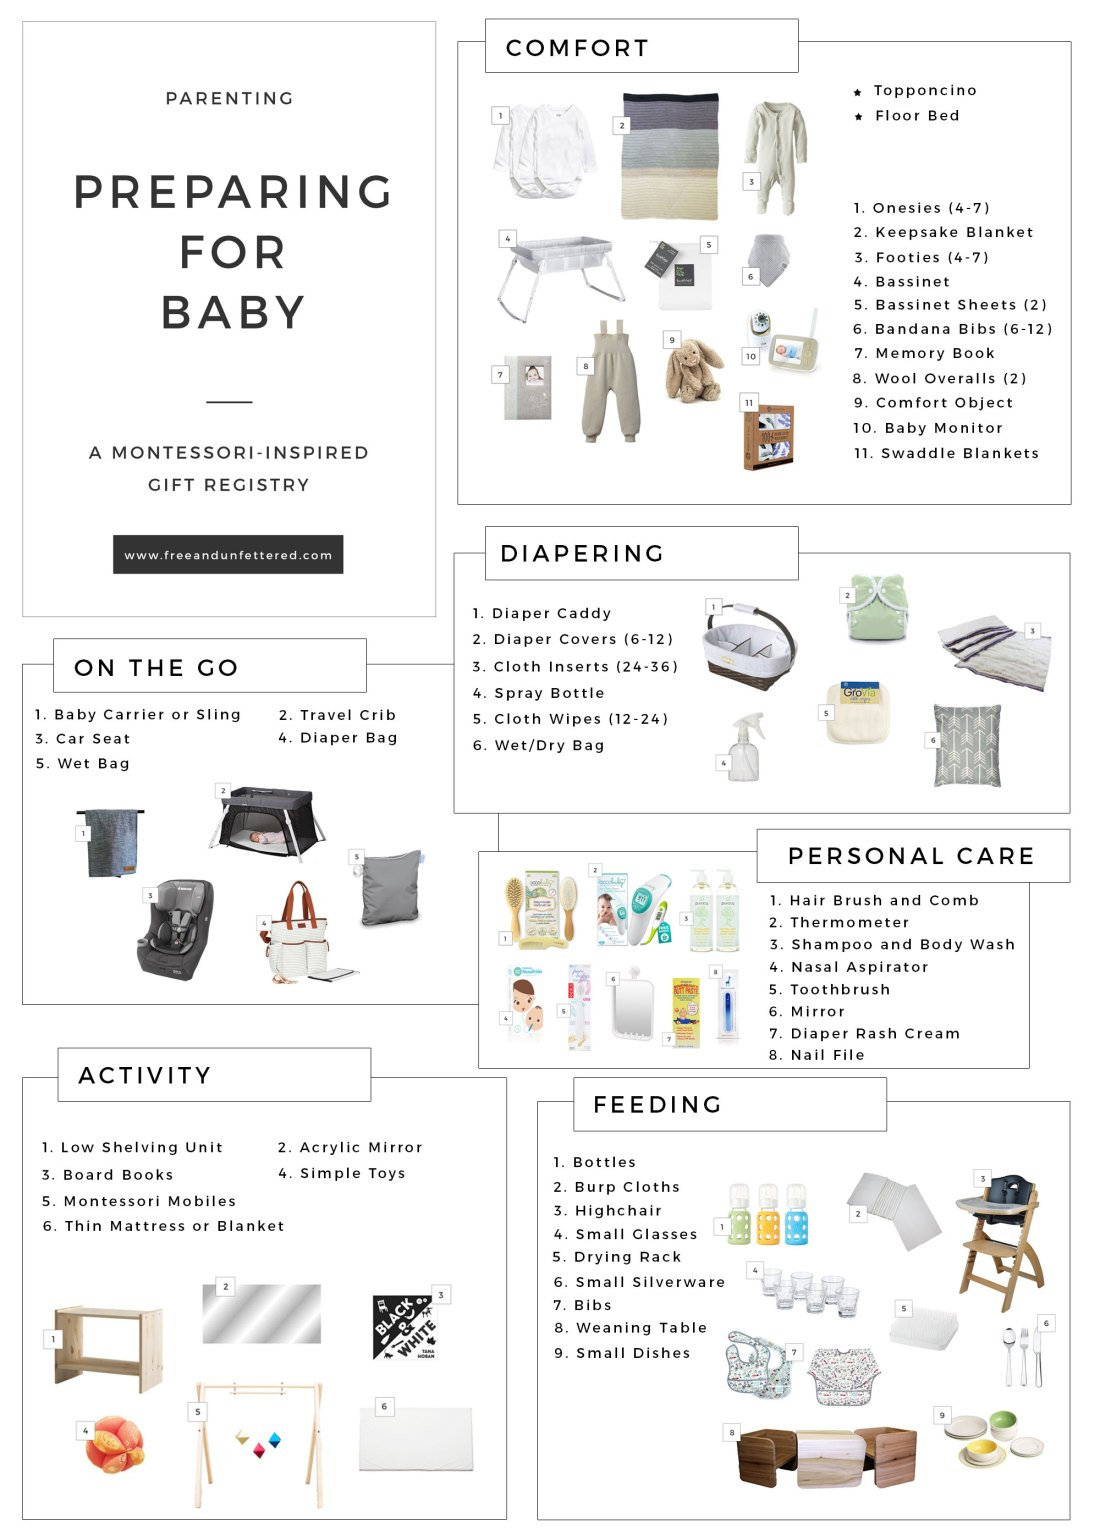 preparing-for-baby-pinterest-graphic